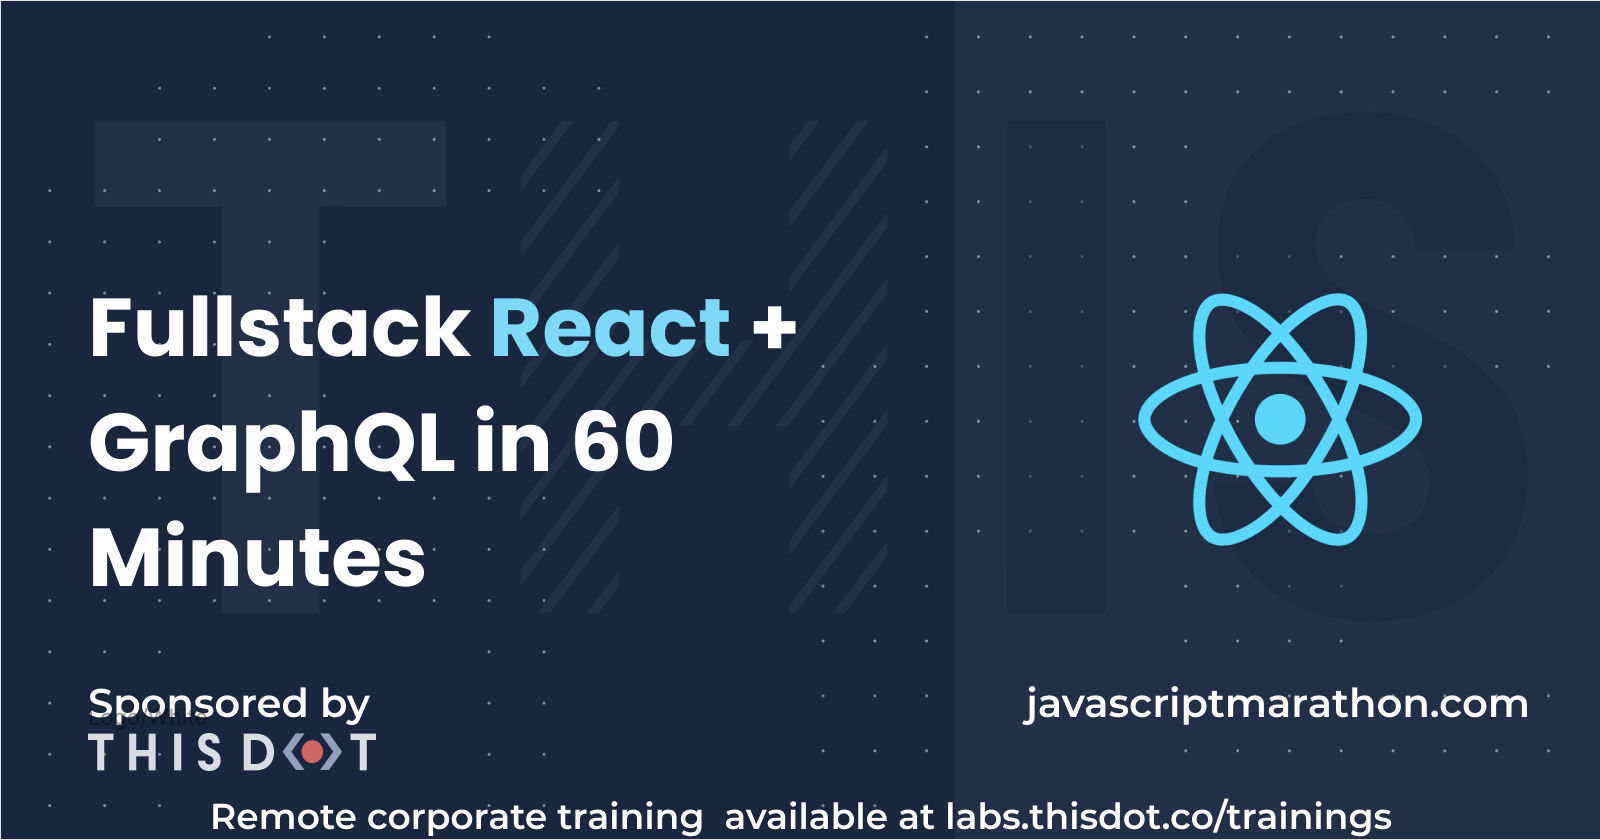 Fullstack React + GraphQL in 60 Minutes (image)